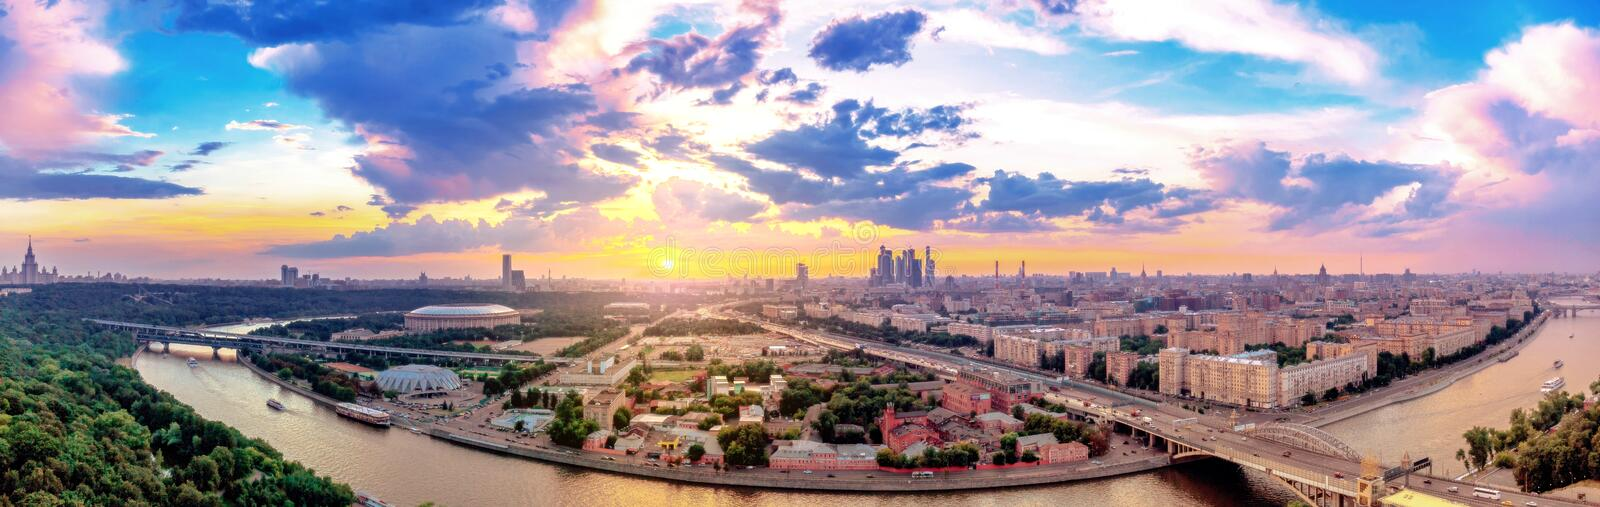 Wde angle vibrant panoramic view of sunset above Moscow city and cloud reflections in river with traveling boats and bridge royalty free stock images